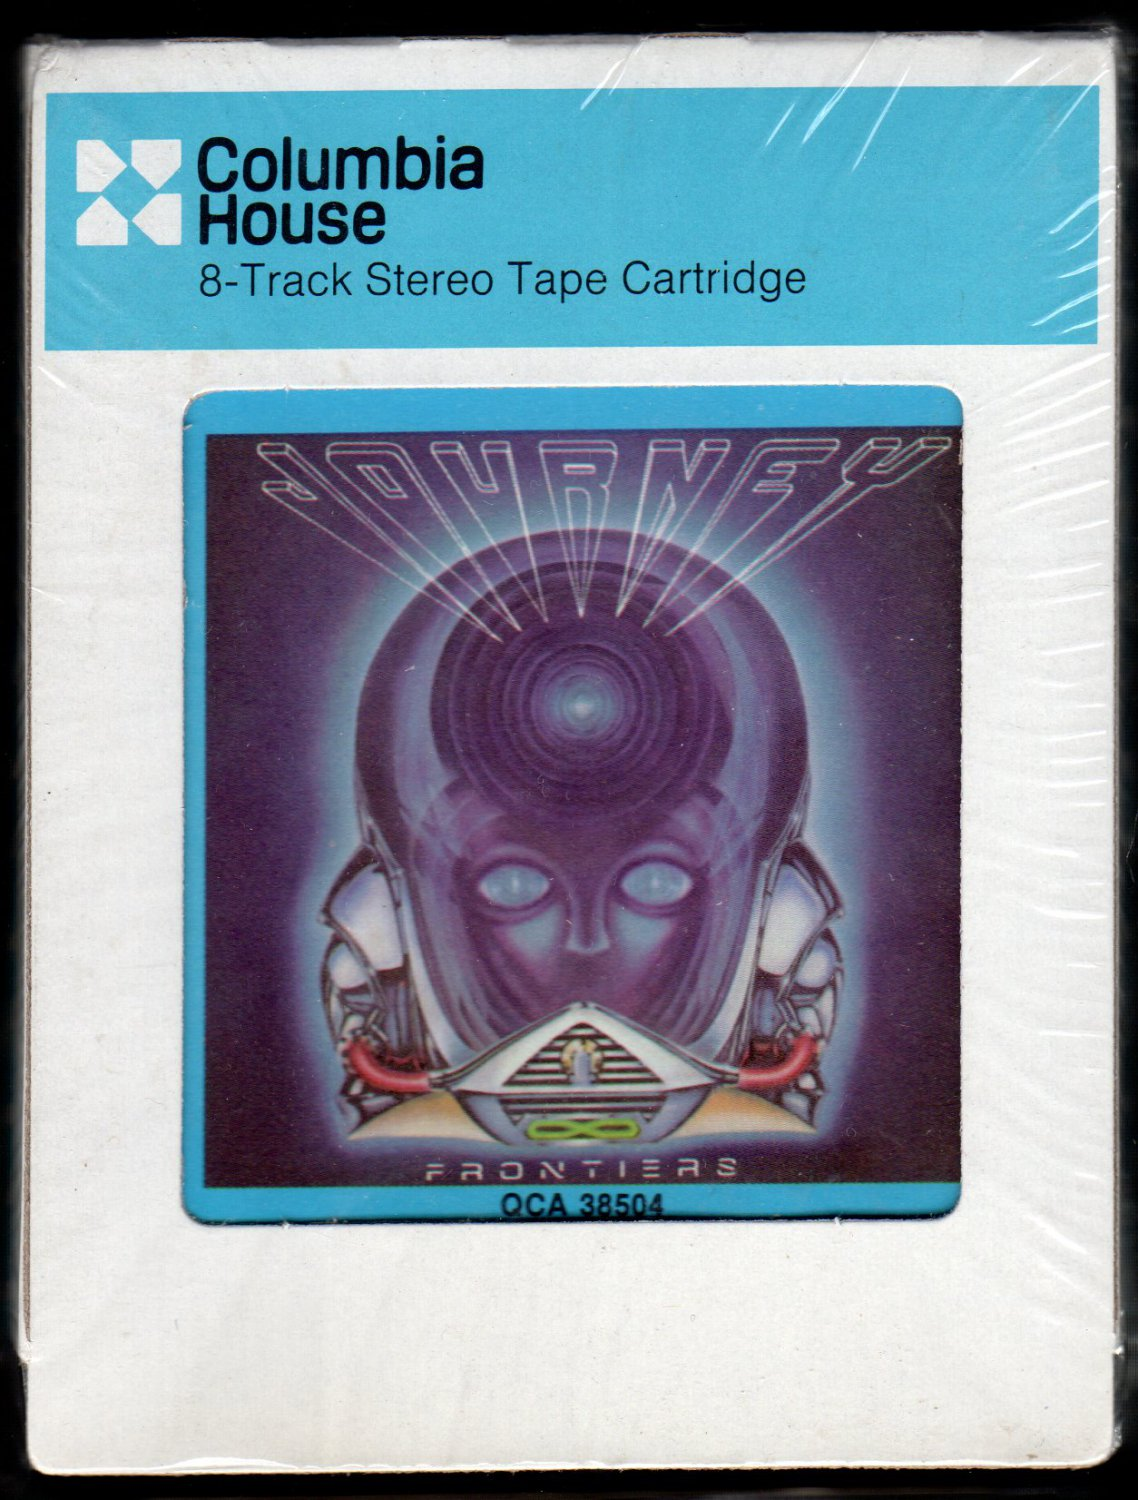 Journey - Frontiers 1983 CRC A50 8-TRACK TAPE